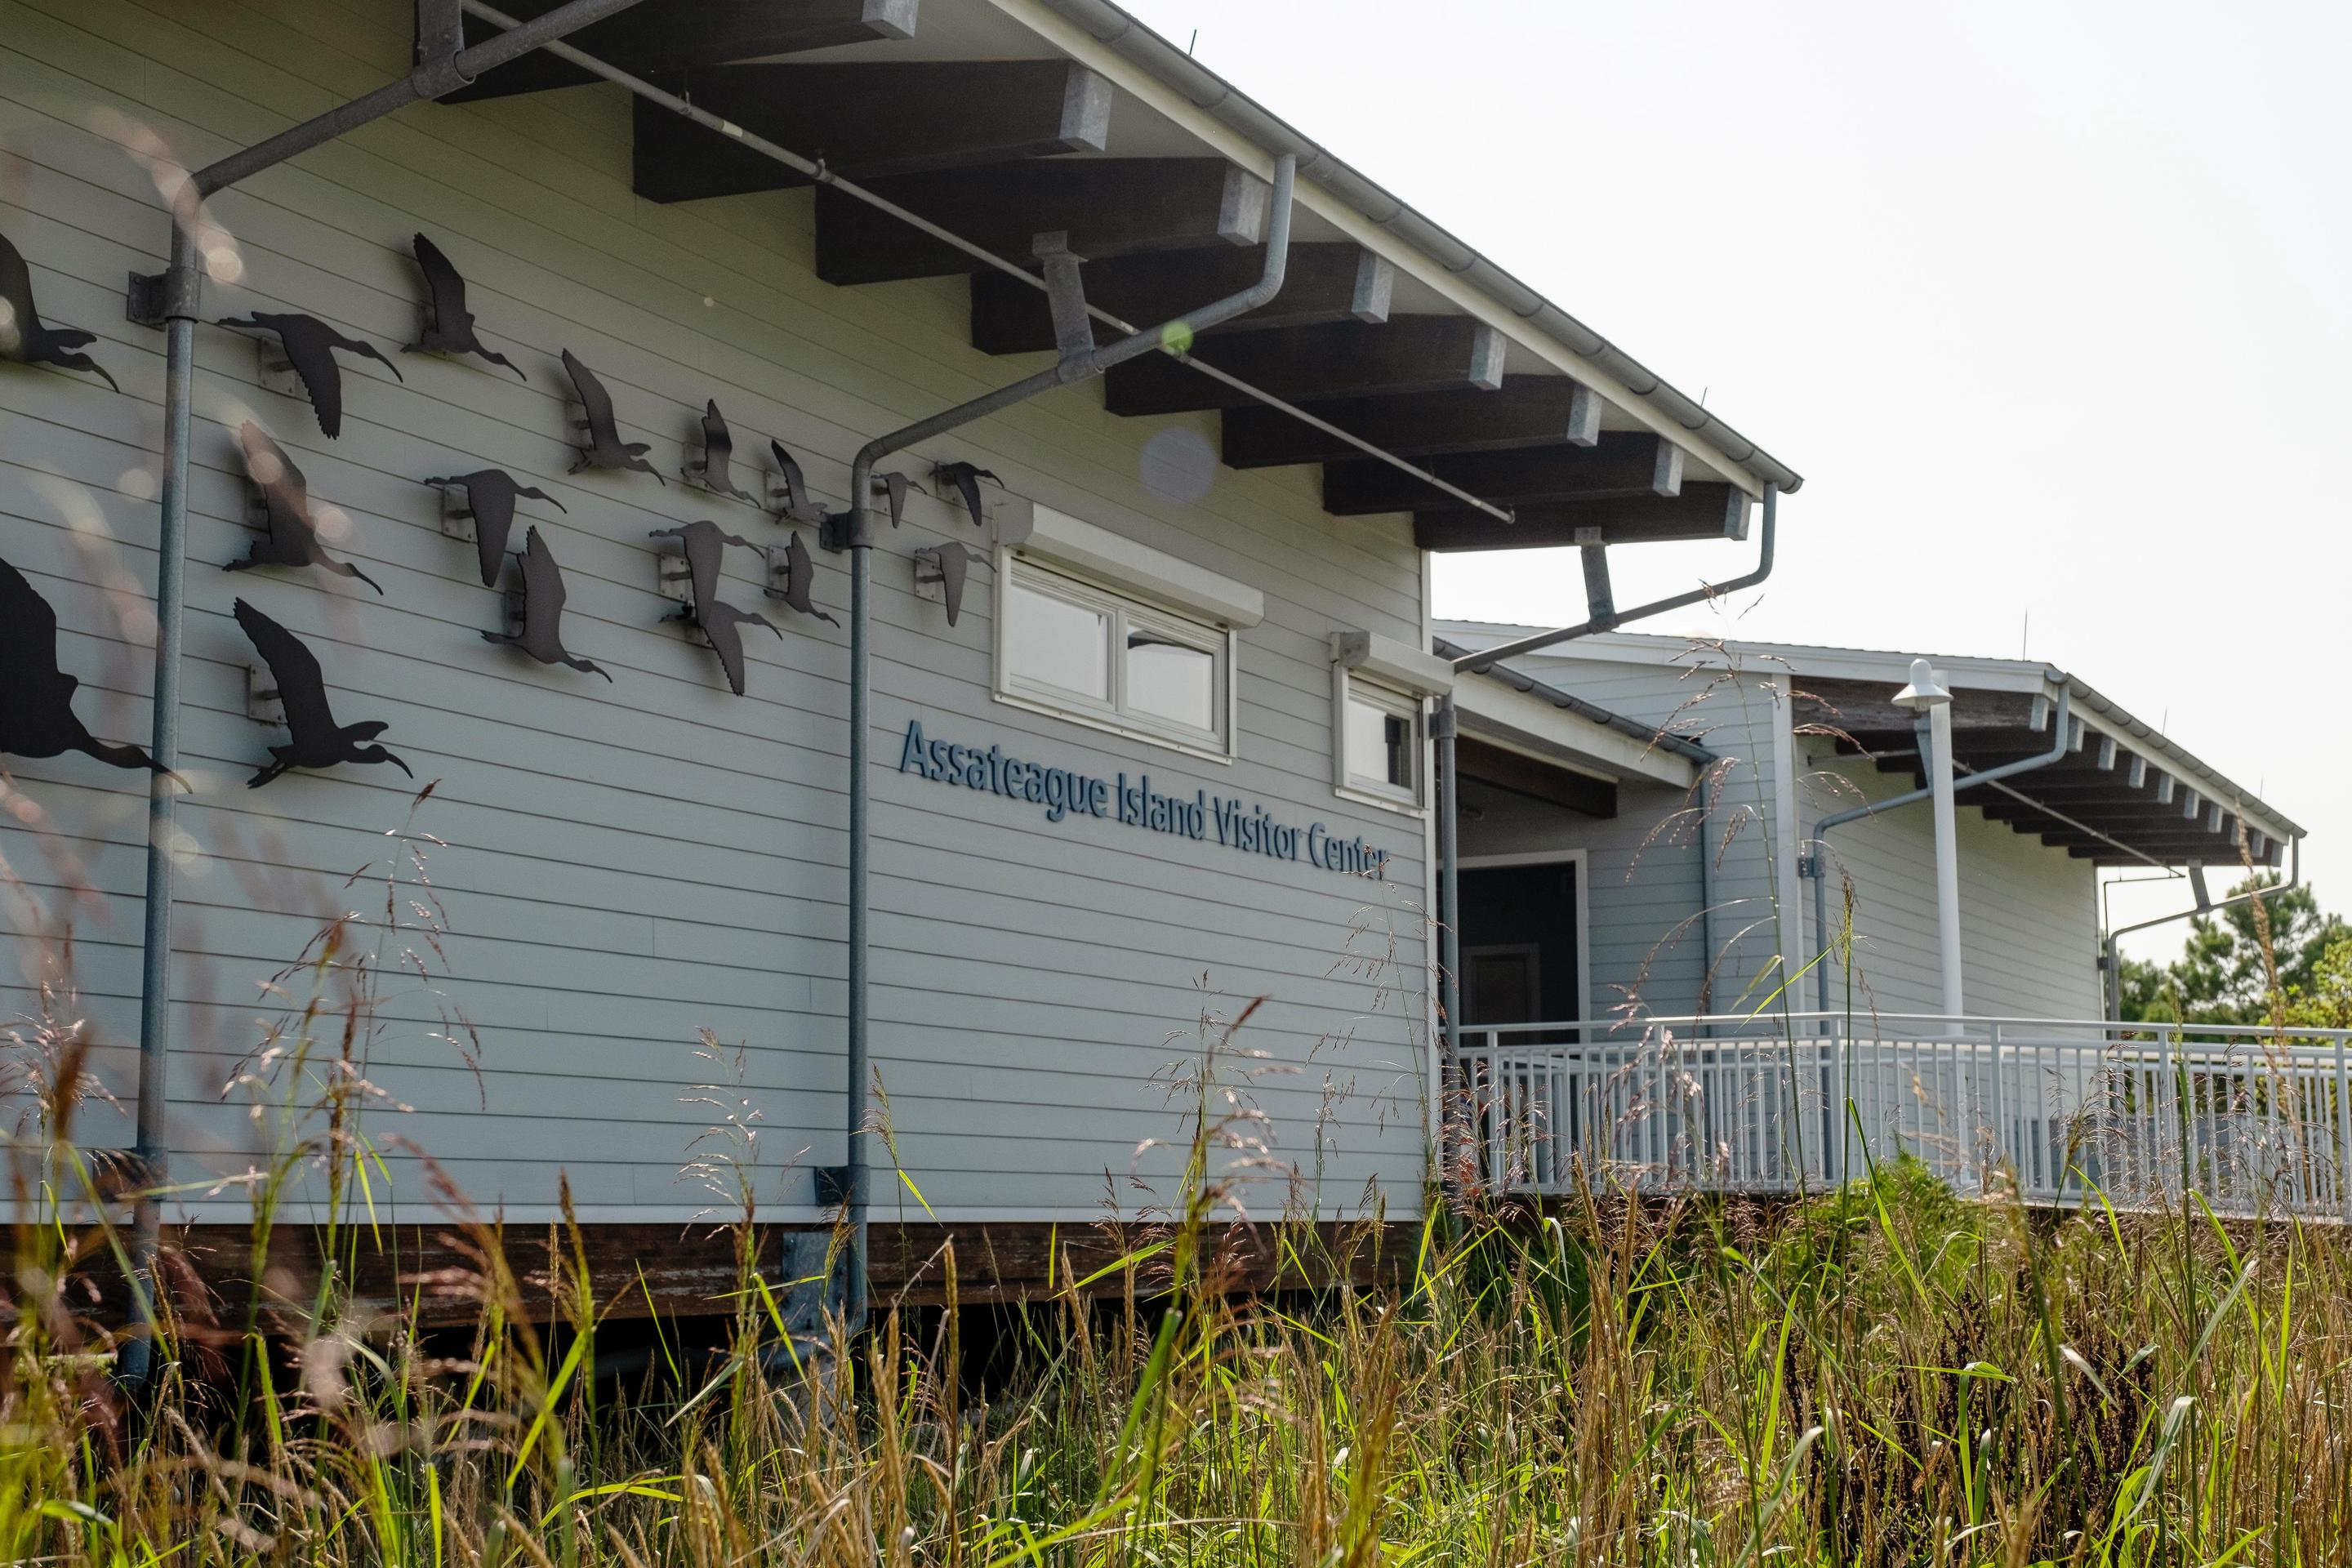 MD VC ExteriorThe exterior view of the Assateague Island Visitor Center